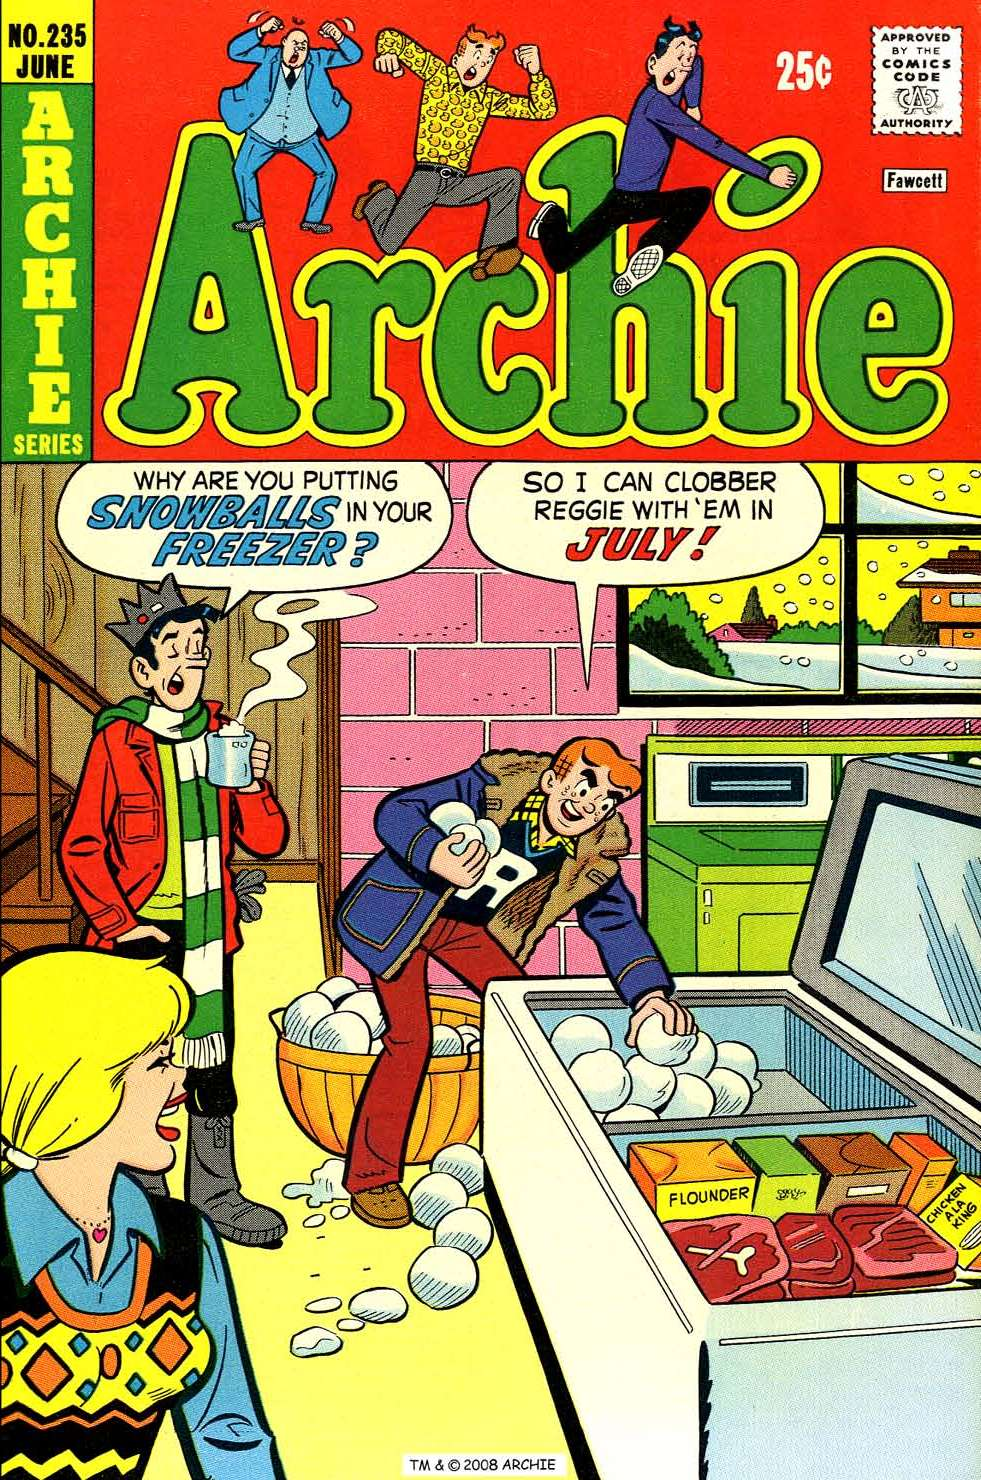 Read online Archie (1960) comic -  Issue #235 - 1